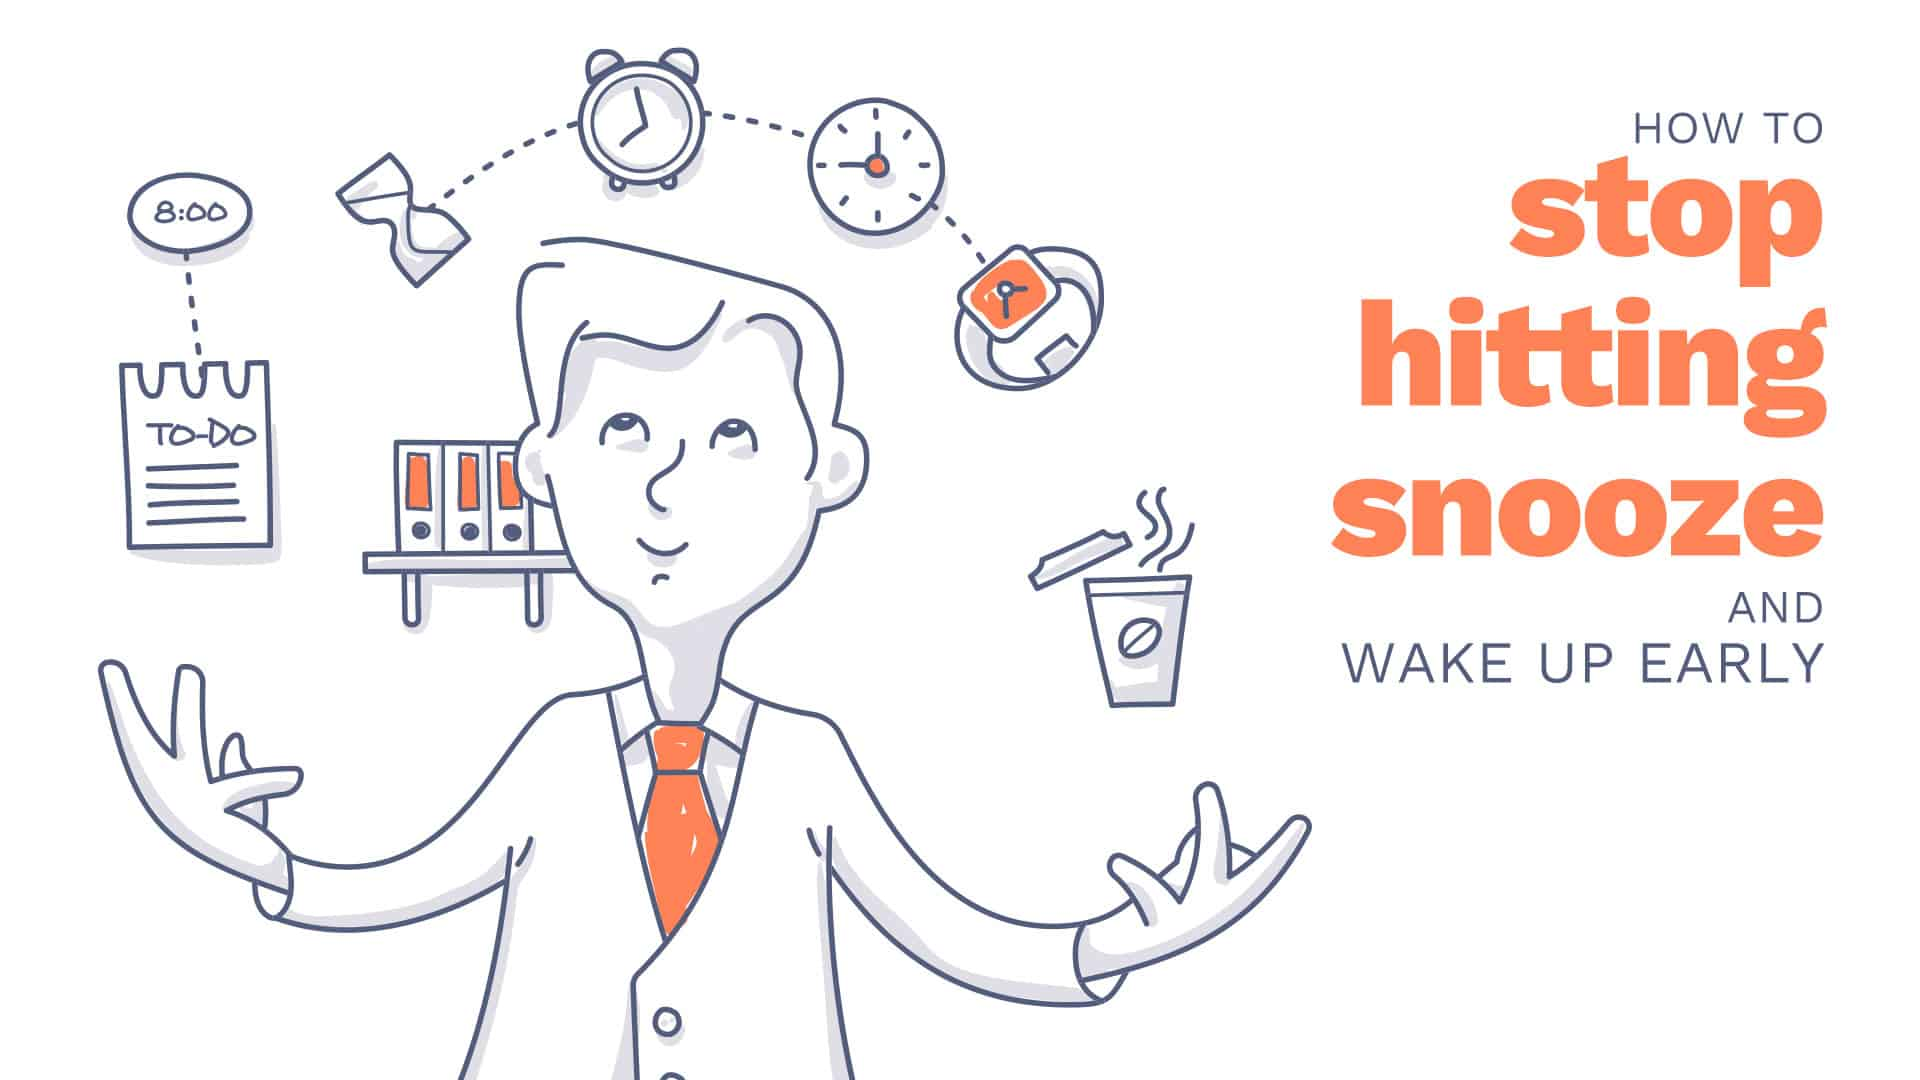 how-to-stop-hitting-snooze-and-wake-up-early-humor-that-works